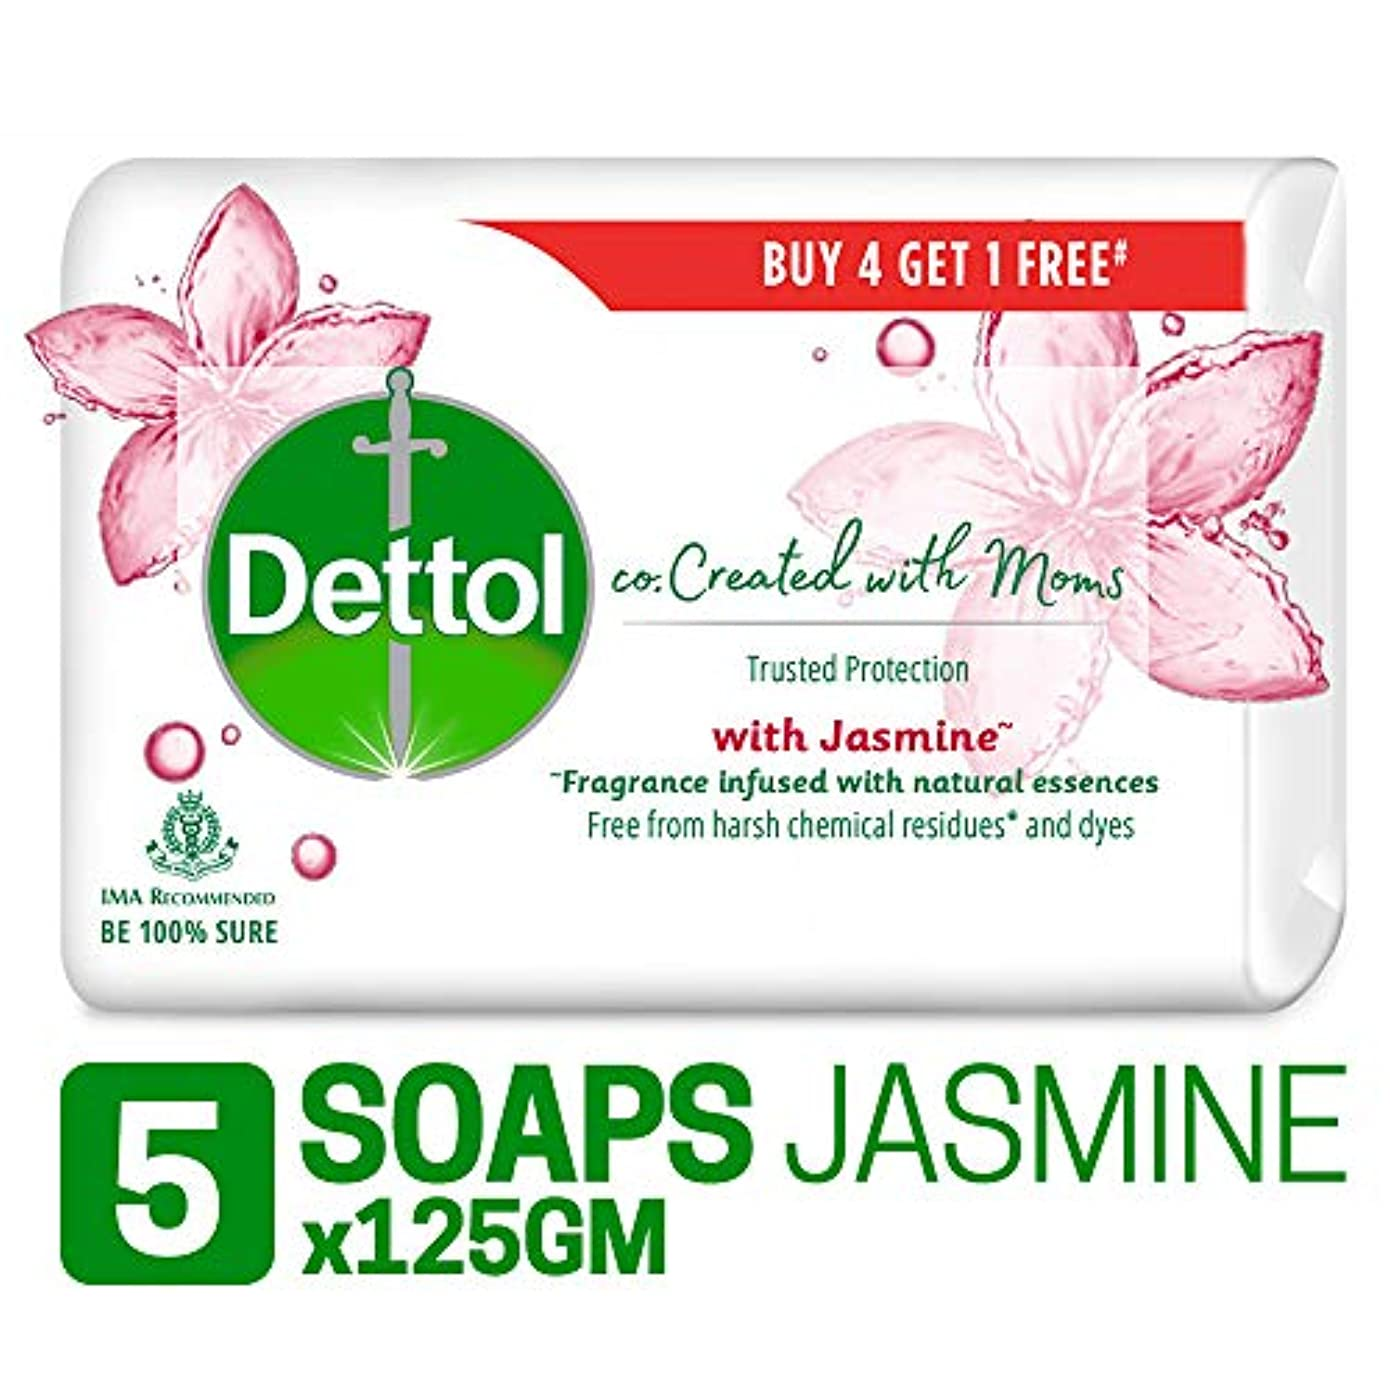 バーマド原理治療Dettol Co-created with moms Jasmine Bathing Soap, 125gm (Buy 4 Get 1 Free)